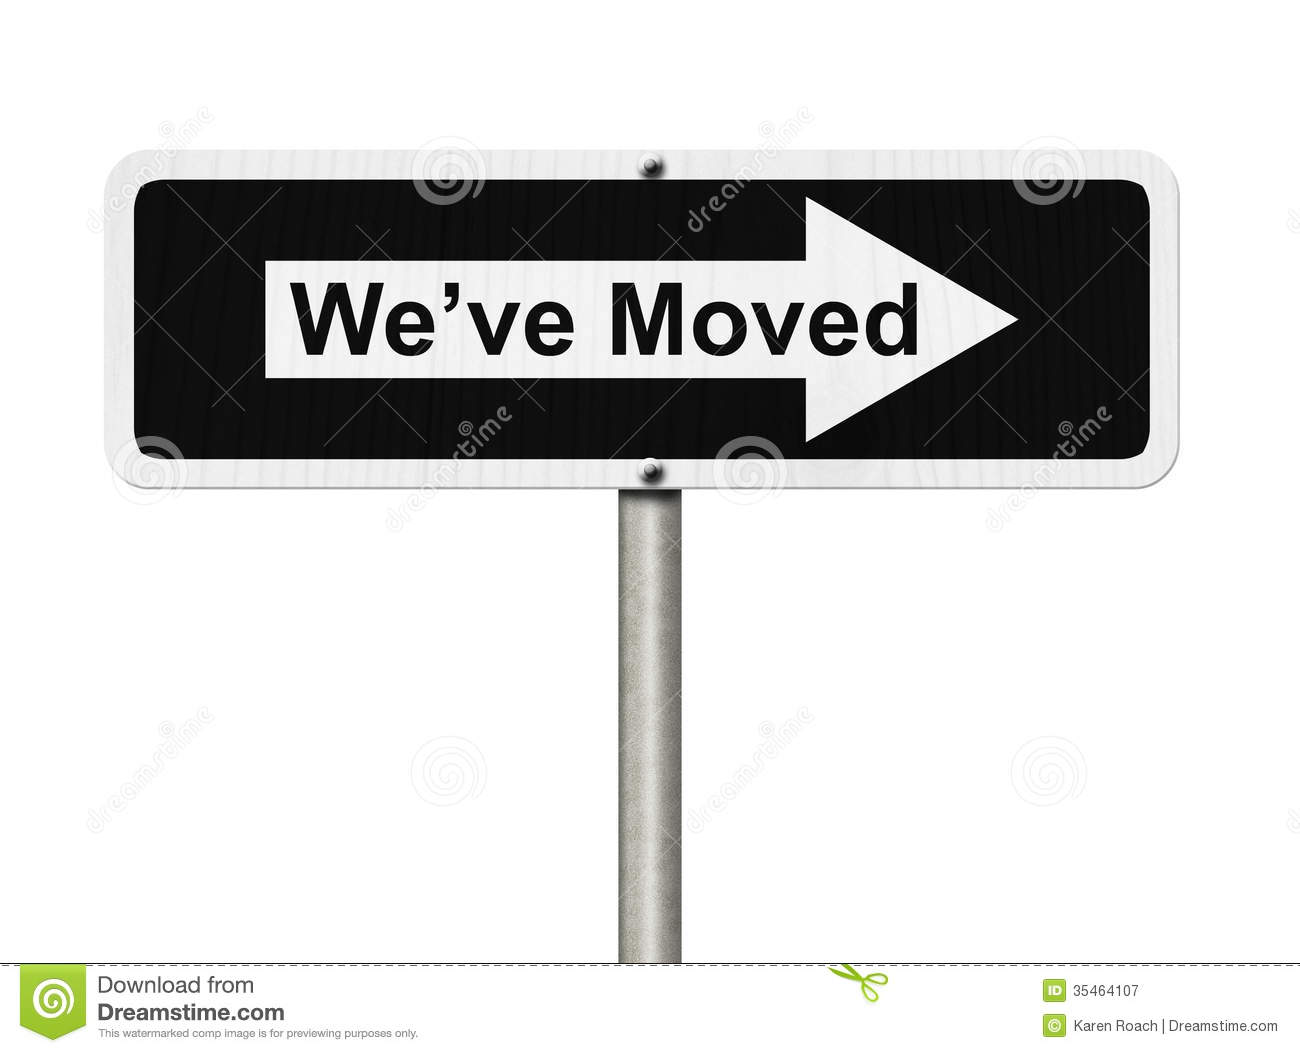 We Have Moved Sign Stock Vector - Image: 58355149